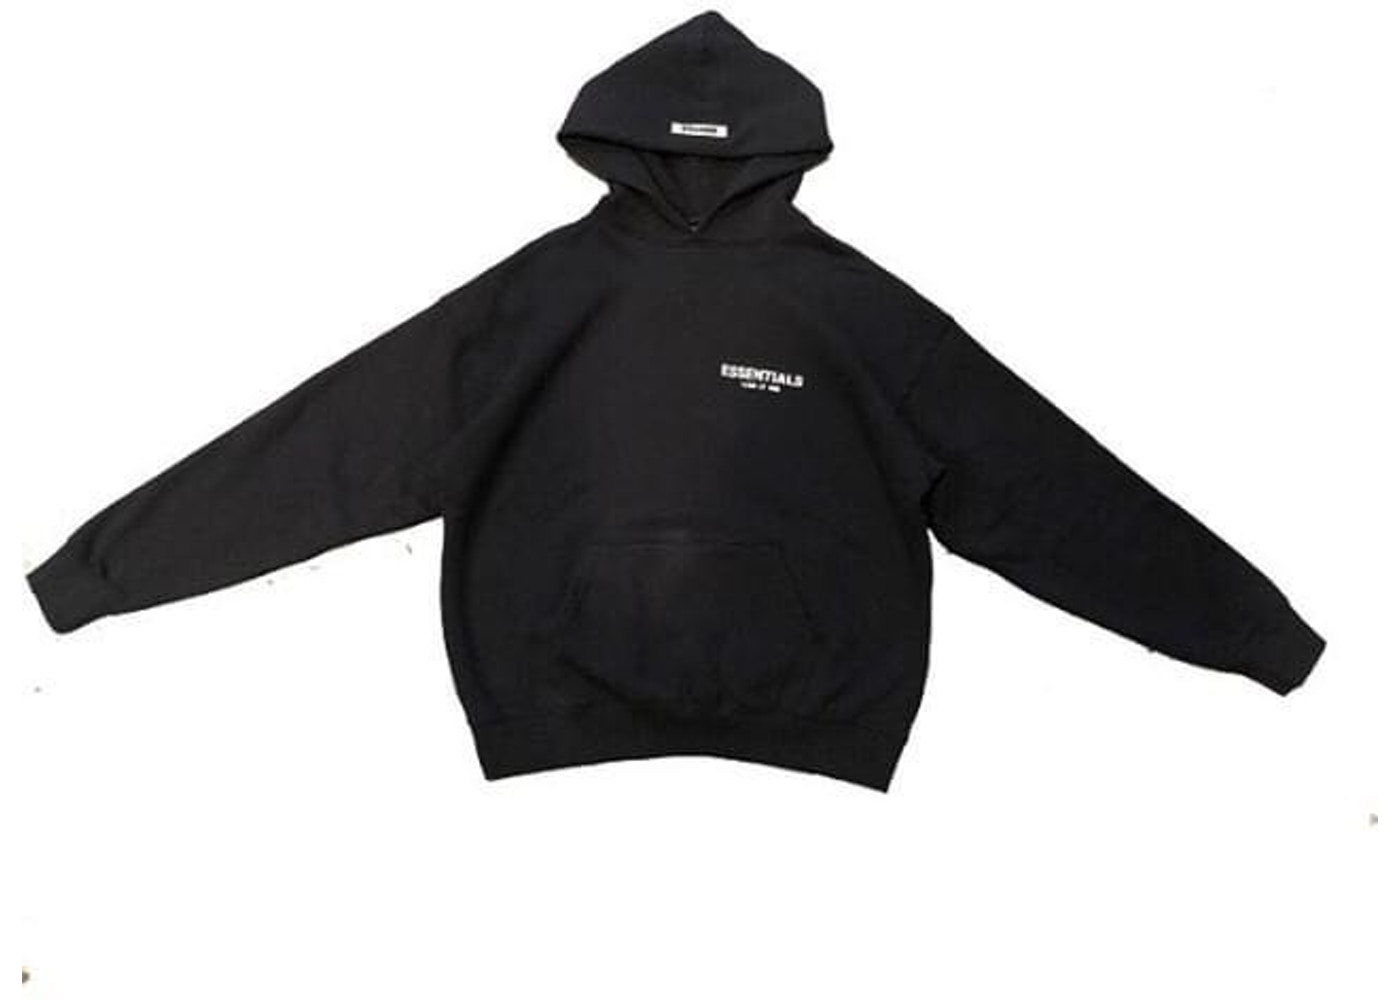 FEAR OF GOD ESSENTIALS Photo Pullover Hoodie (FW19) Black